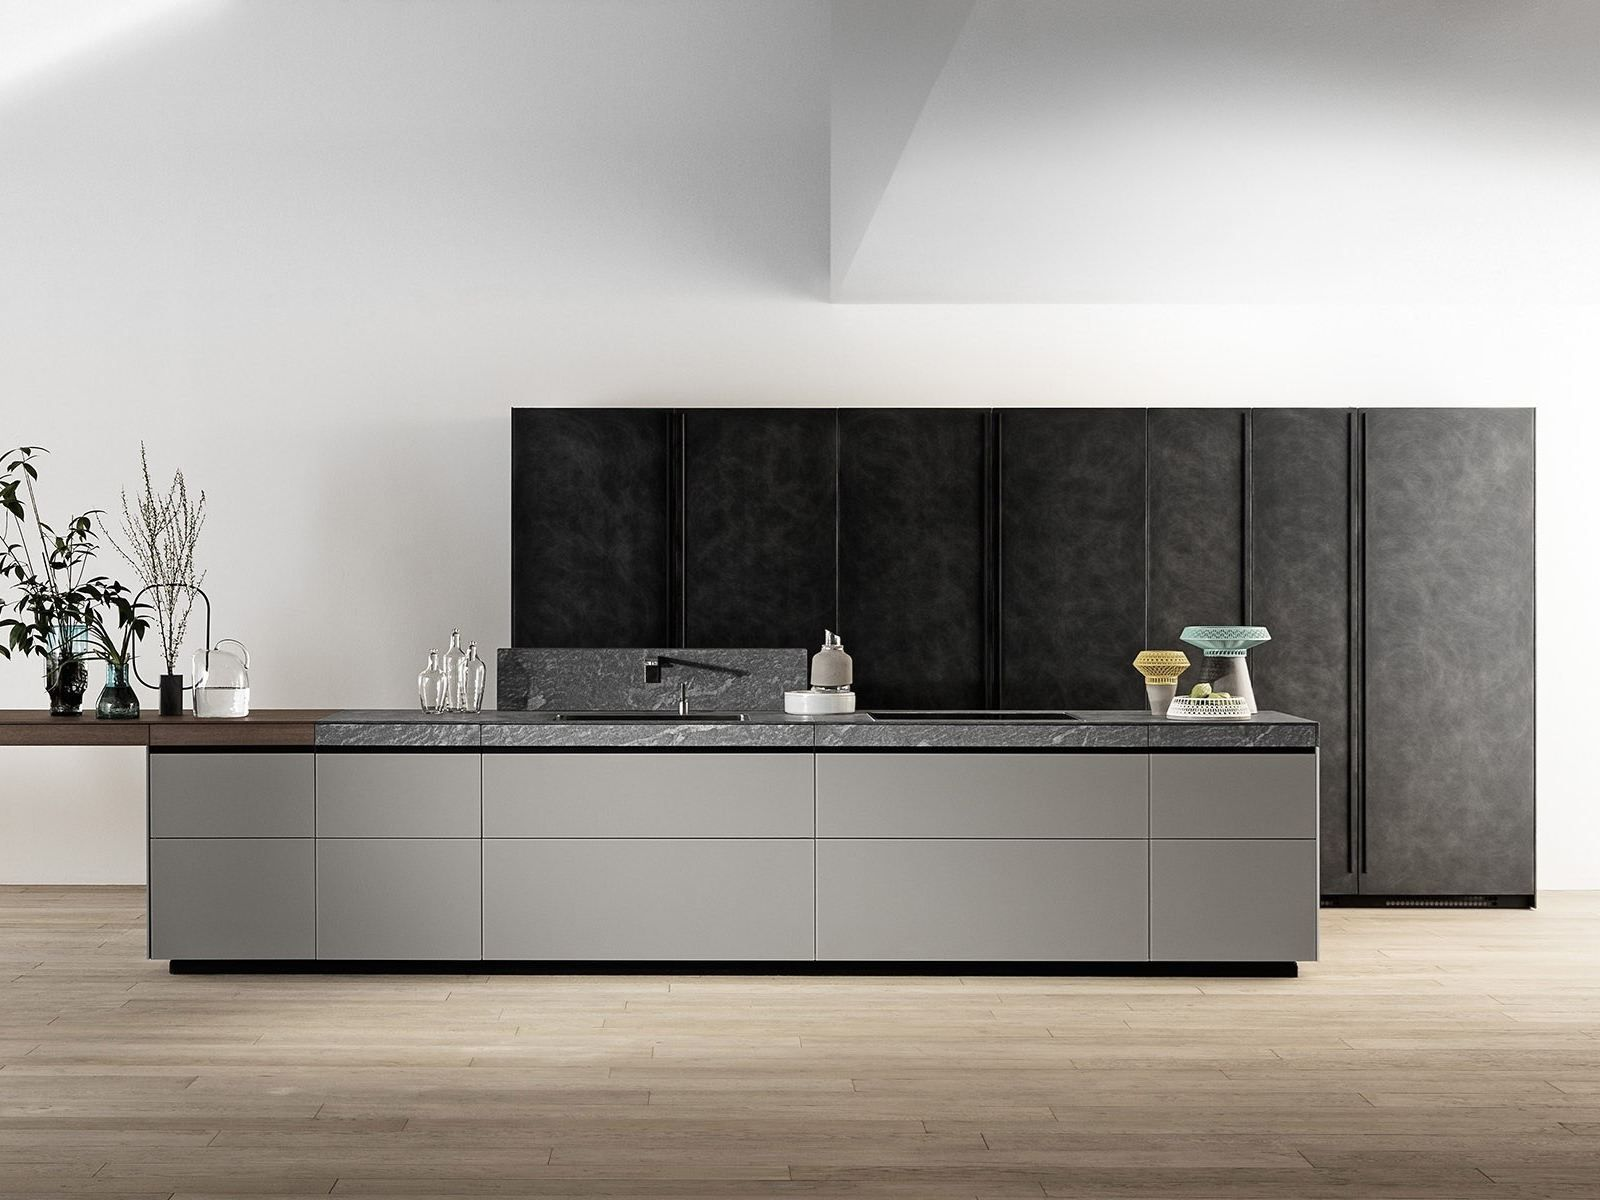 Stone kitchen with island XILA by Boffi | s t o r e | Pinterest ...